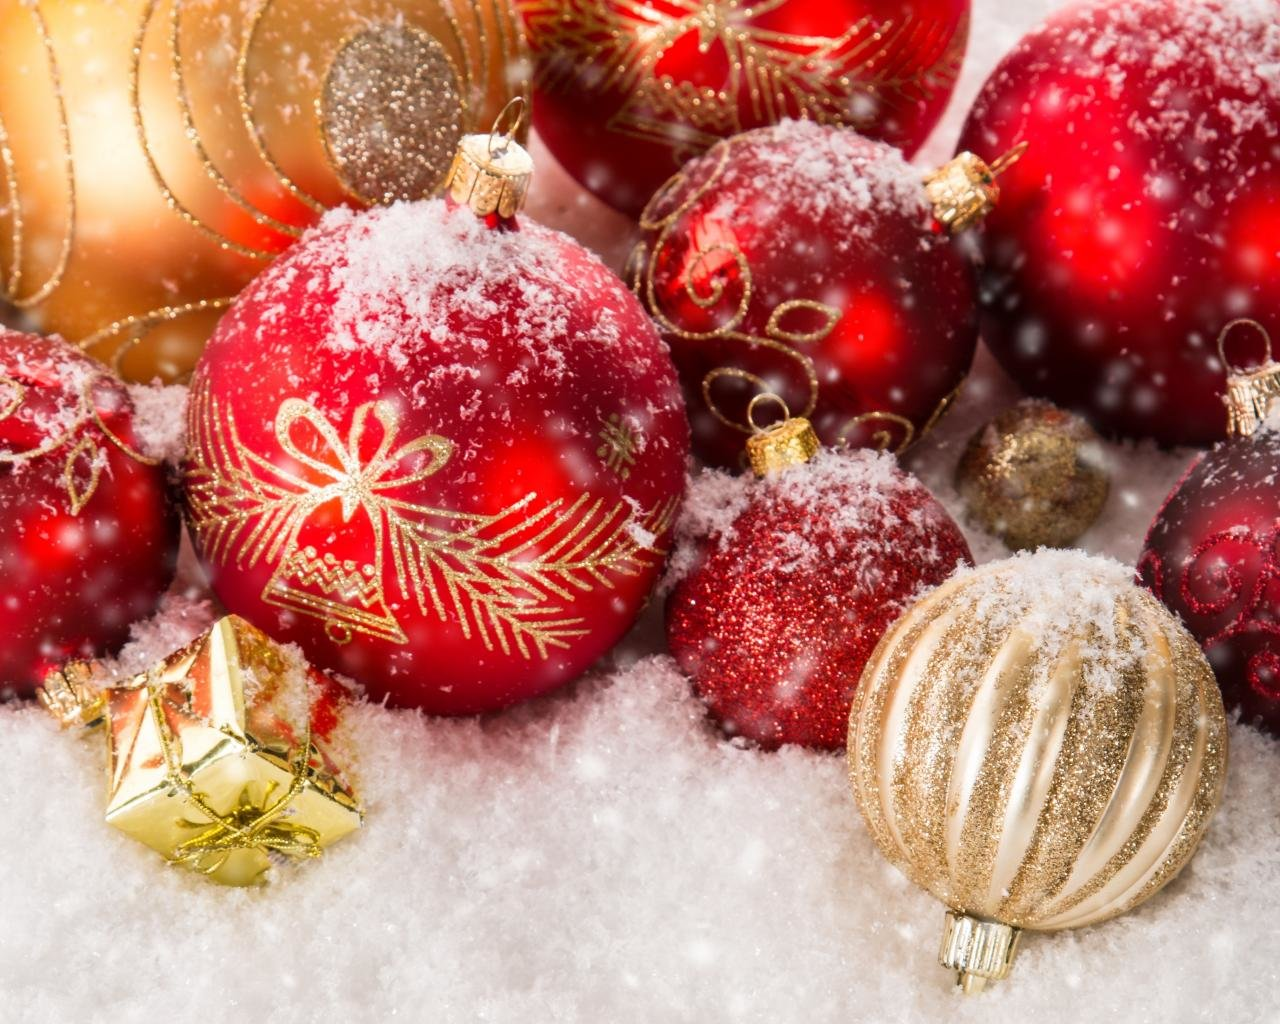 High Resolution Christmas Ornaments Decorations Hd 1280x1024 Wallpaper Id434149 For Pc